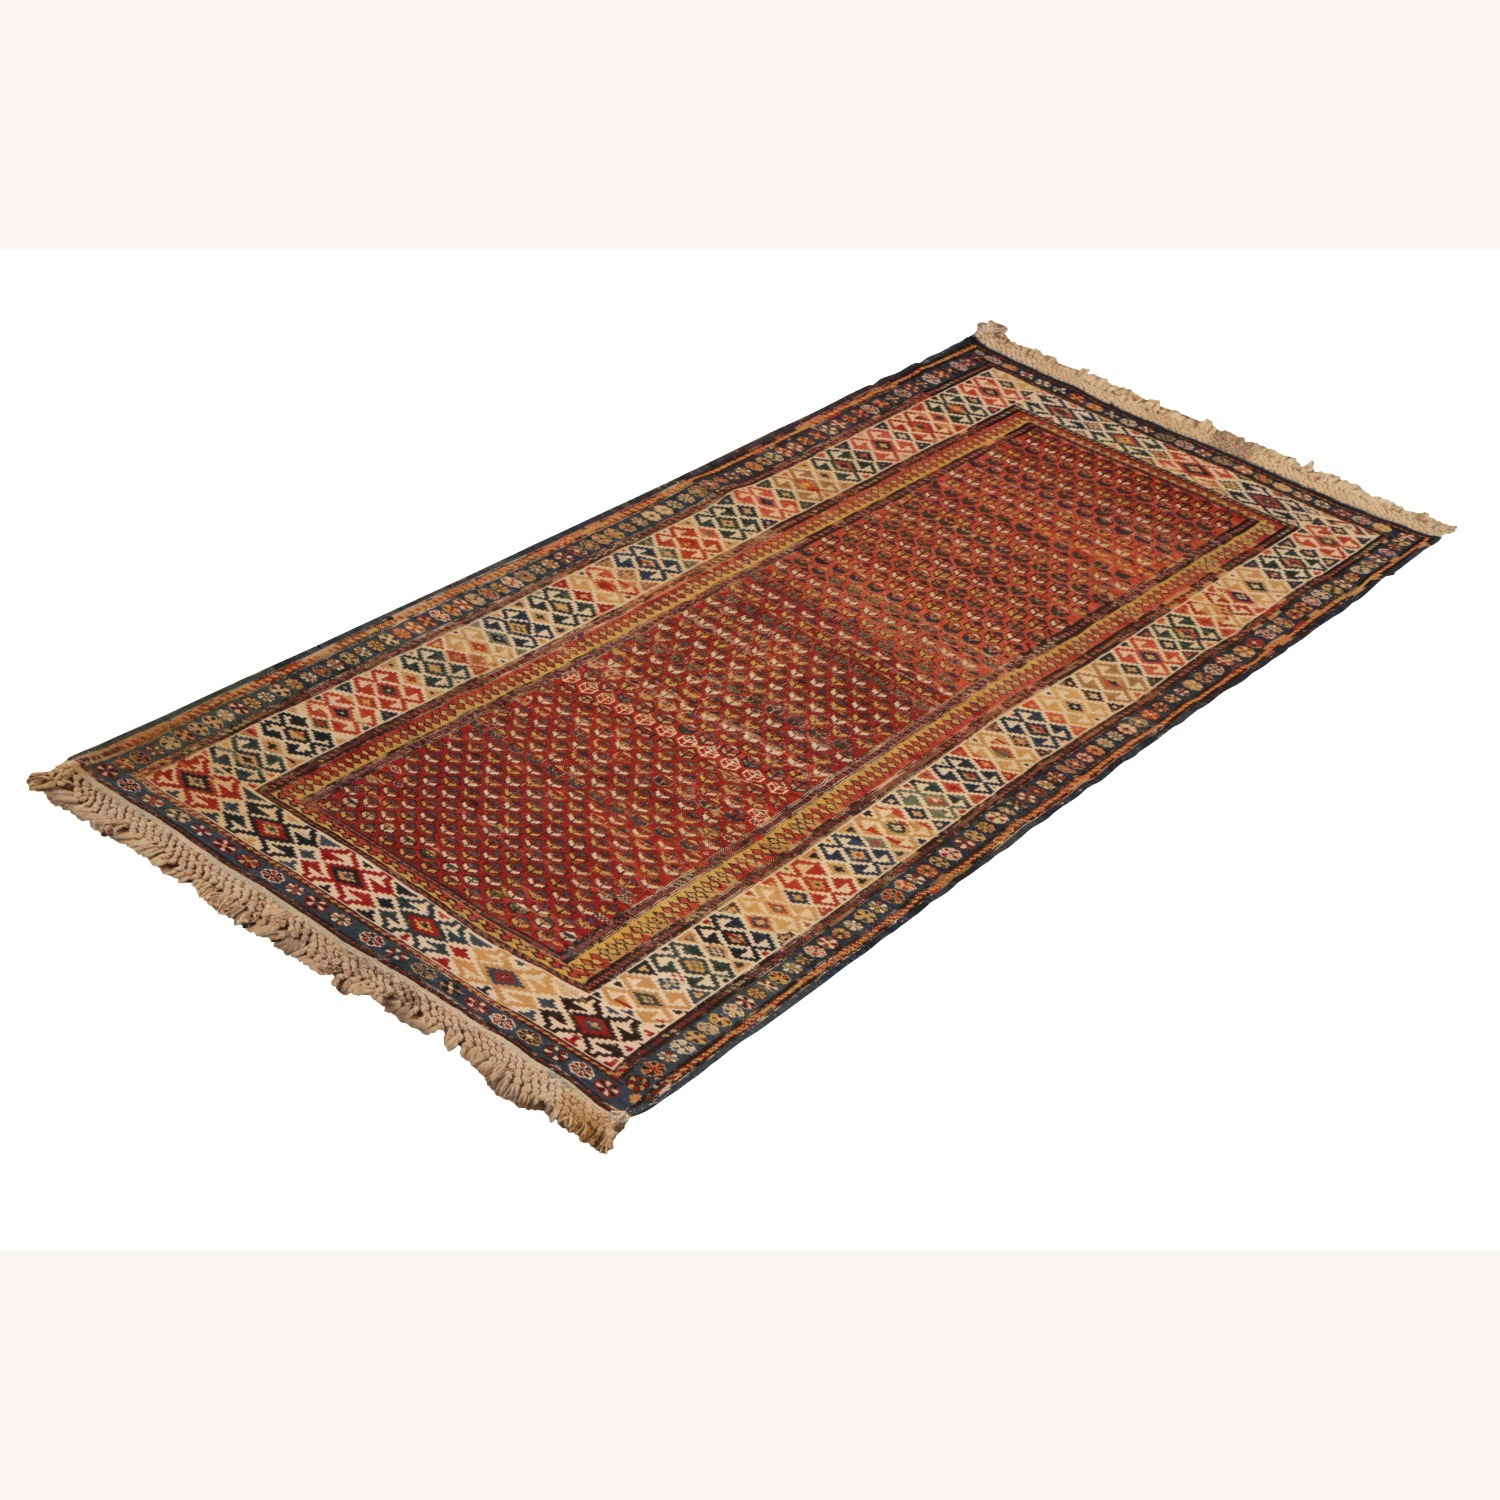 19th-Century Antique Soumak Rug - image-5